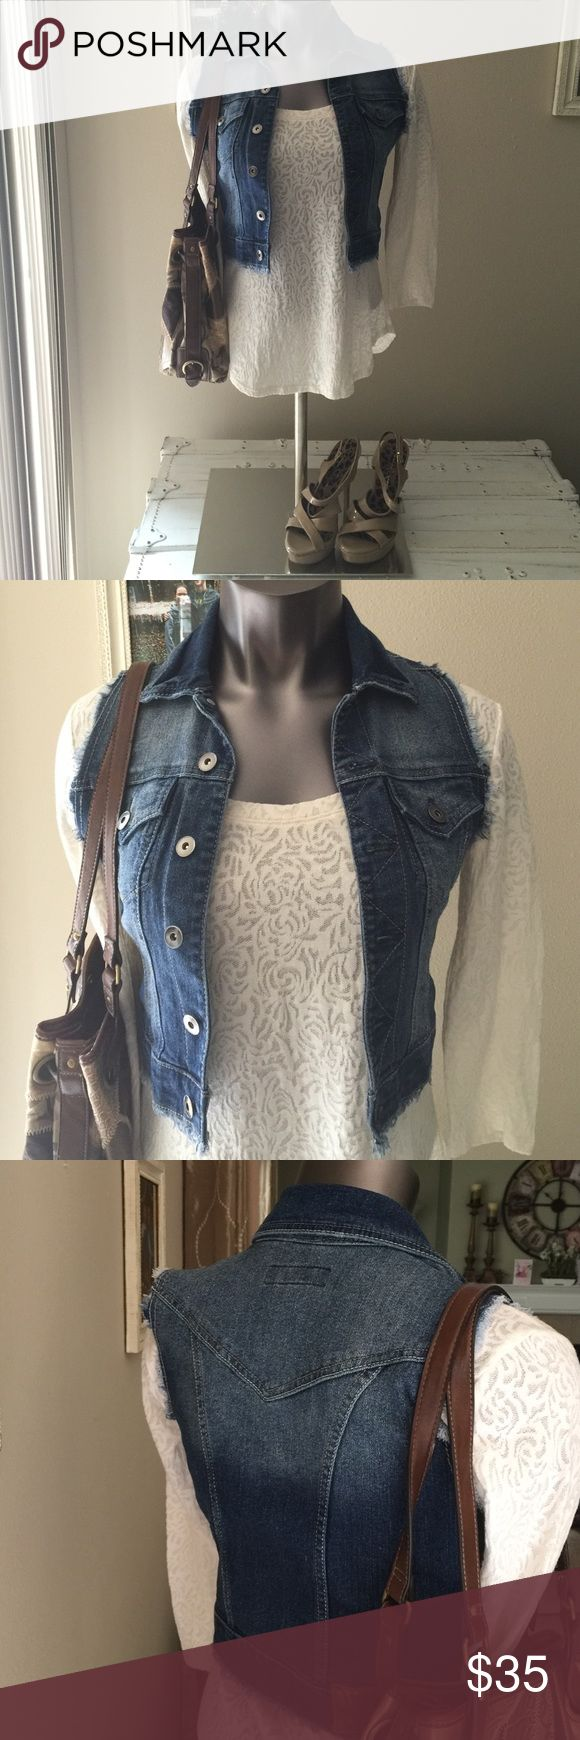 PARIS BLUES, SIZE SMALL, SLEEVELESS JEAN JACKET  PARIS BLUES, SIZE SMALL, SLEEVELESS JEAN JACKET! PERFECT CONDITION! Bought for my daughter...she NEVER wore it! ADORABLE! PAIR WITH ANYTHING! DRESS UP OR DOWN!  Paris Blues Jackets & Coats Jean Jackets